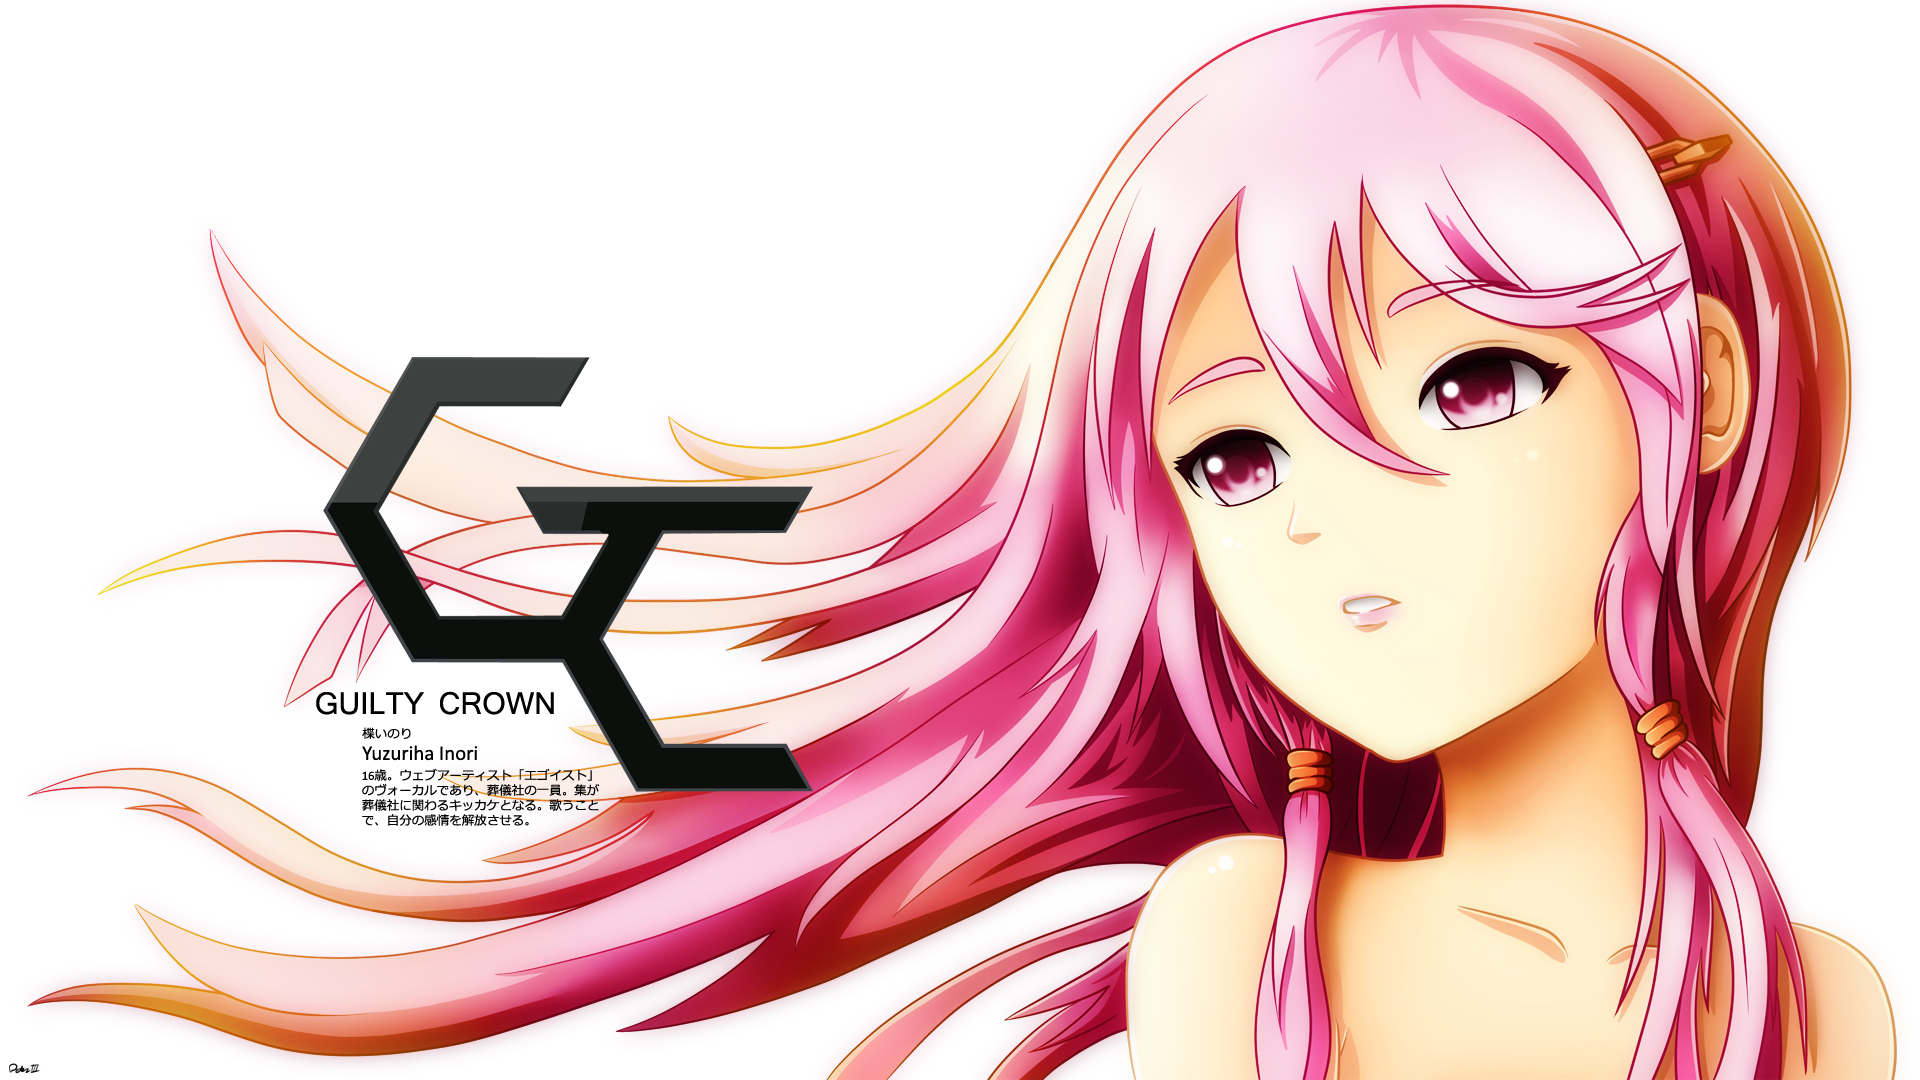 Guilty Crown - Yuzuriha Inori by Exiled-Artist